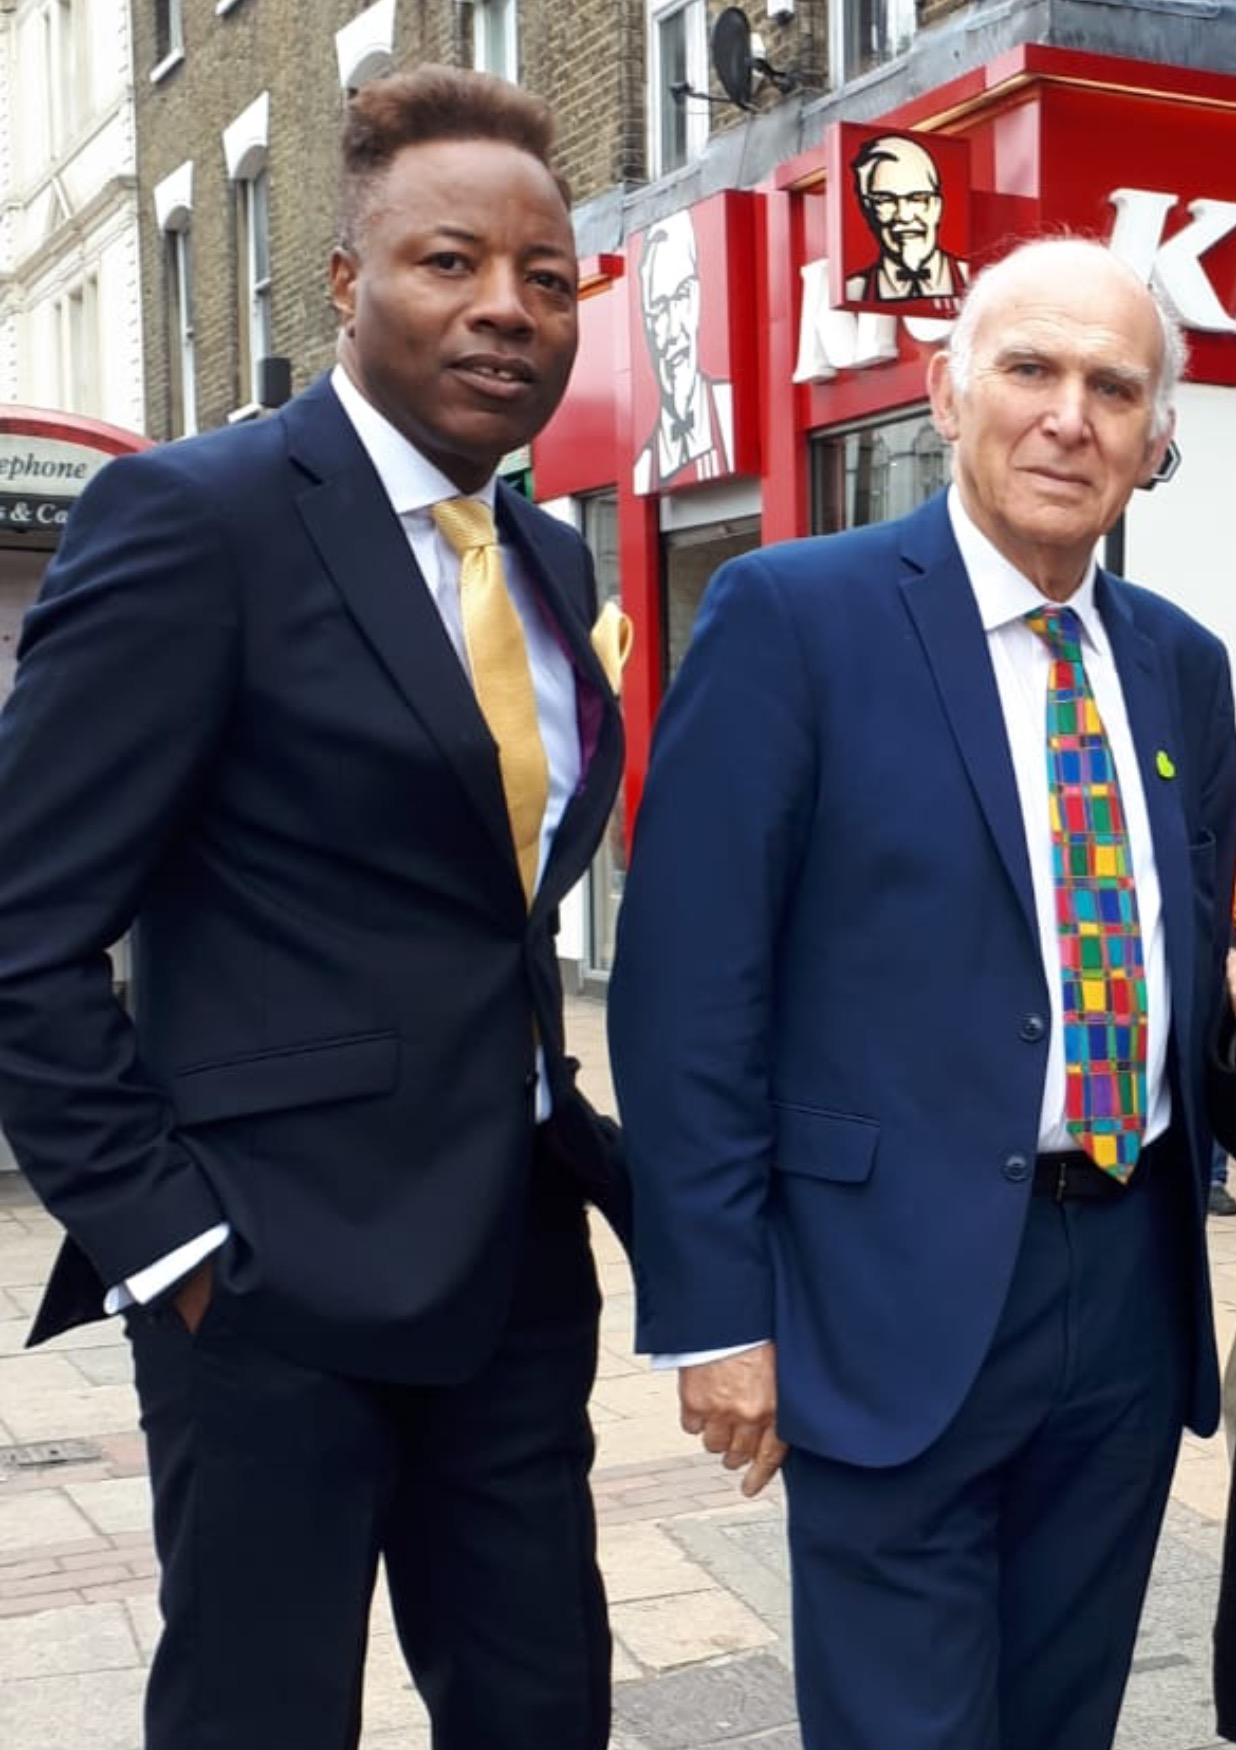 Roderick Lynch with Vince Cable